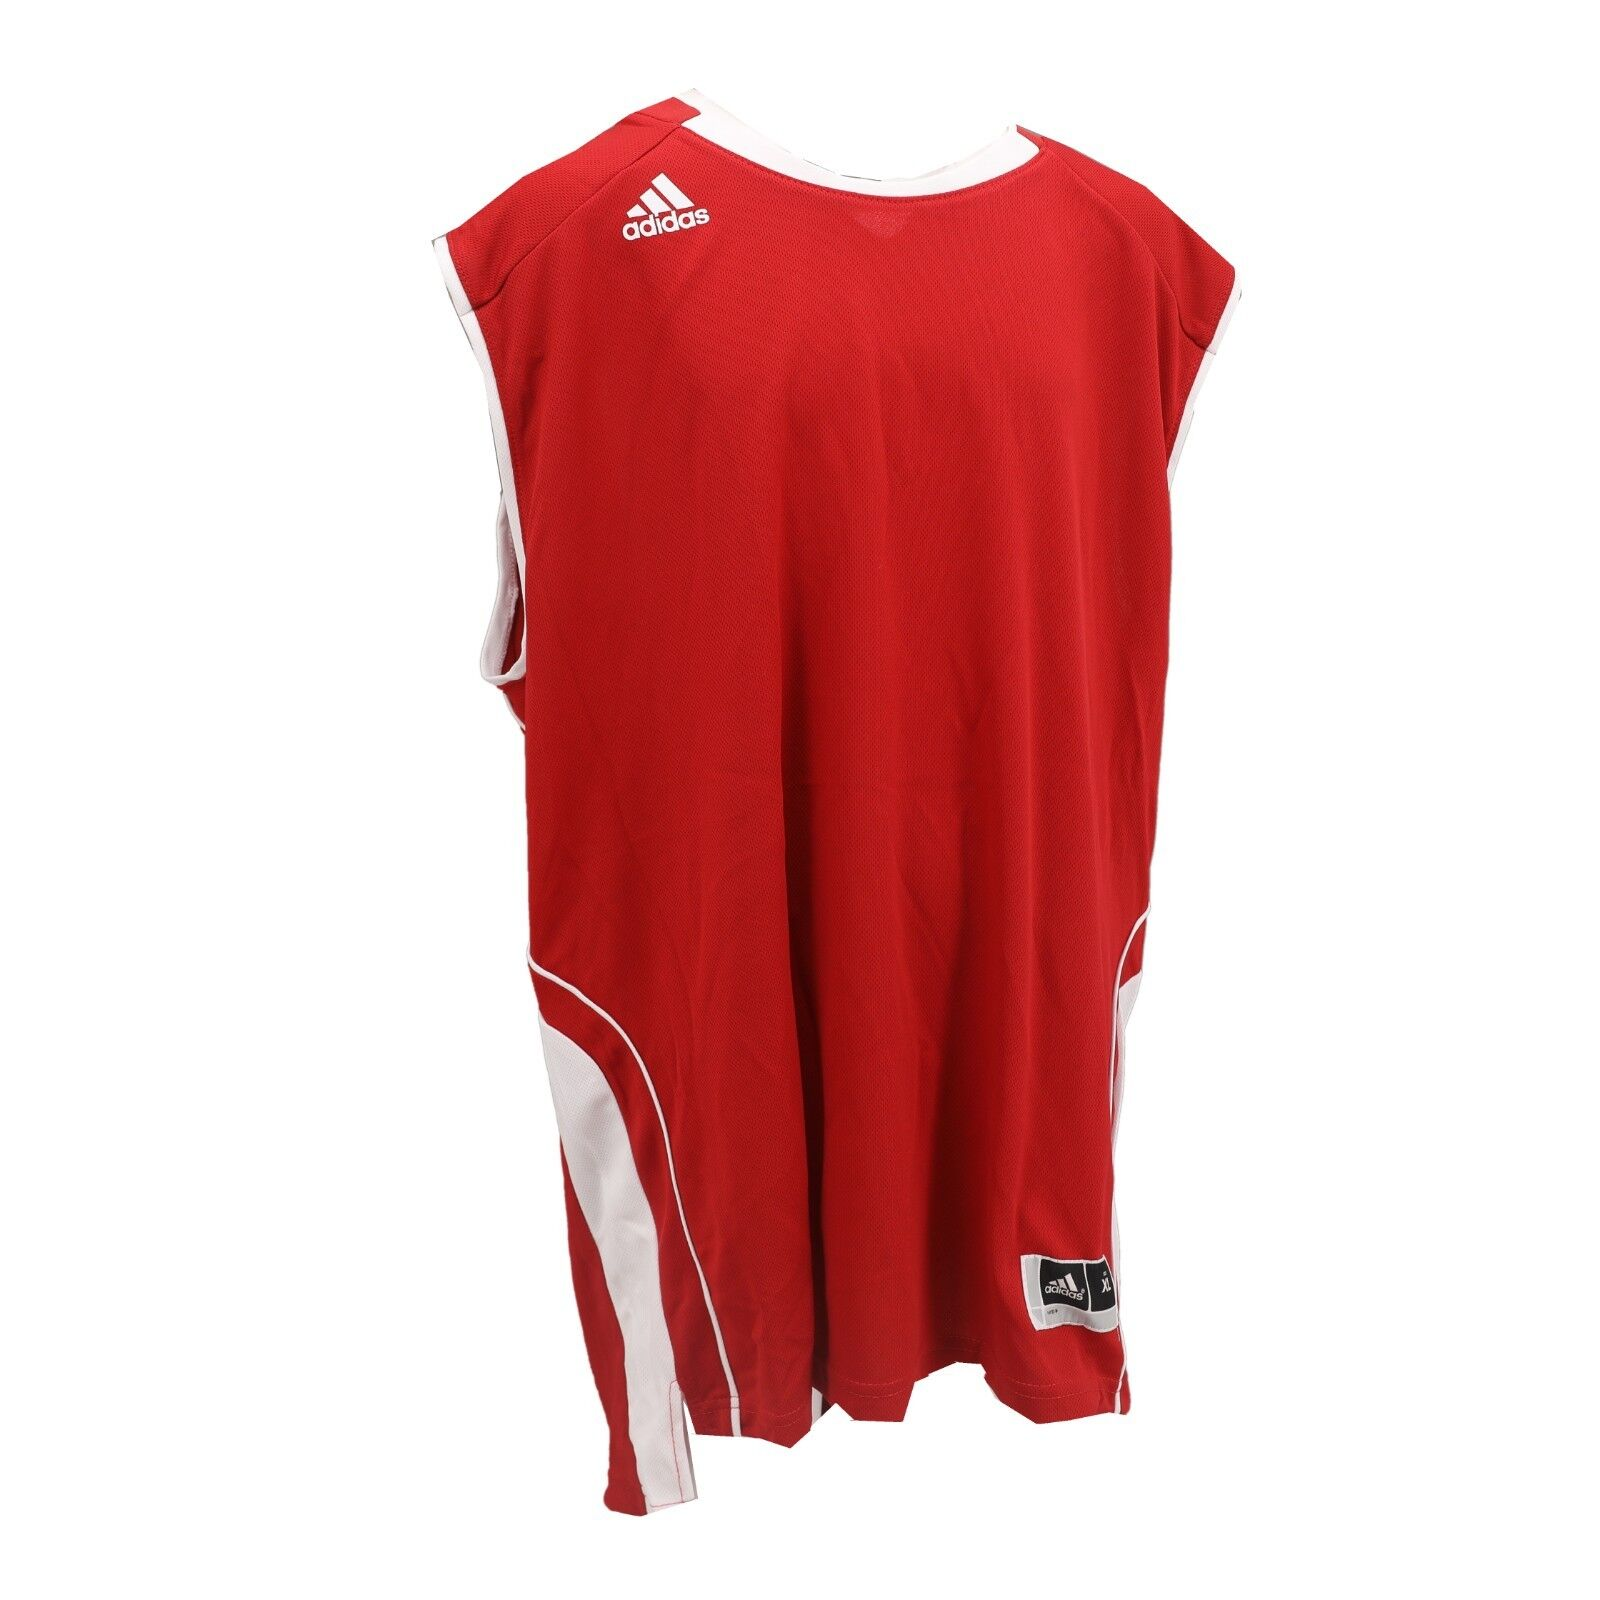 cd6ec251363 Wisconsin Badgers NCAA Adidas Kids   Youth Size Basketball Blank Jersey New  Tags